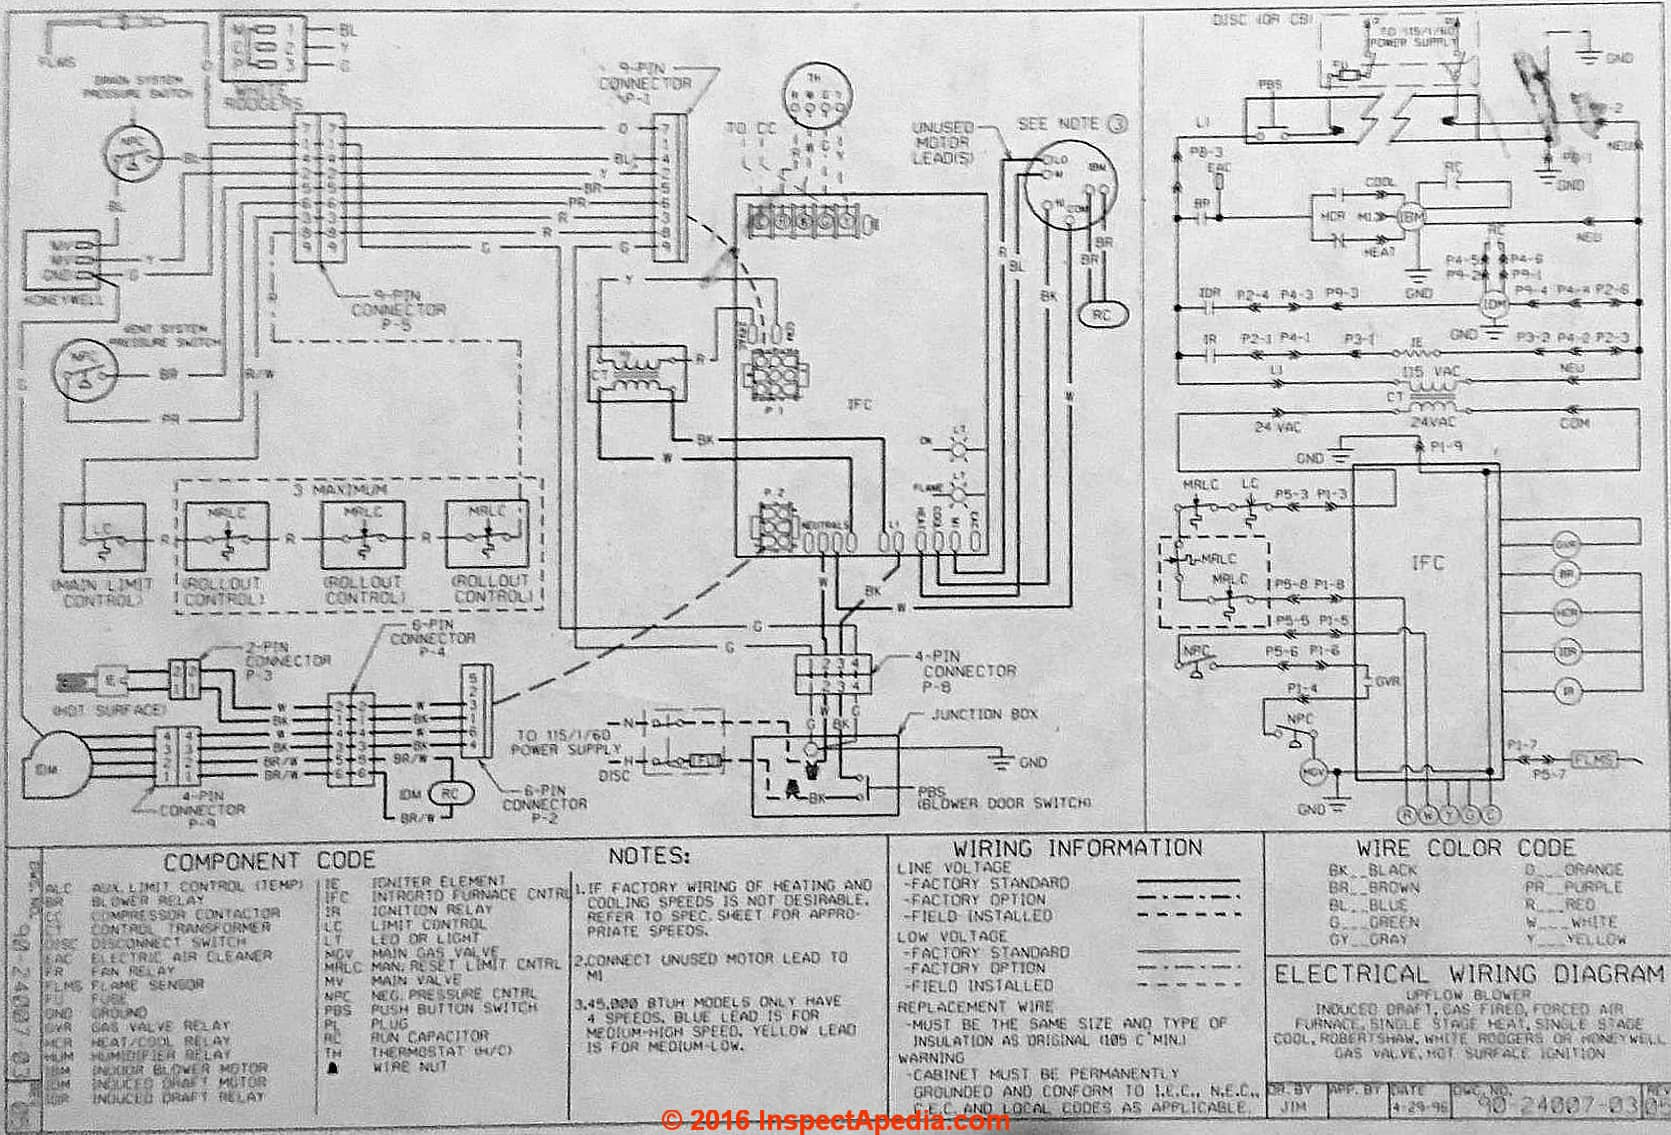 Rheem_AHU_Wiring_Diagram_IAP air conditioner heat pump faqs general electric heat pump wiring diagram at eliteediting.co